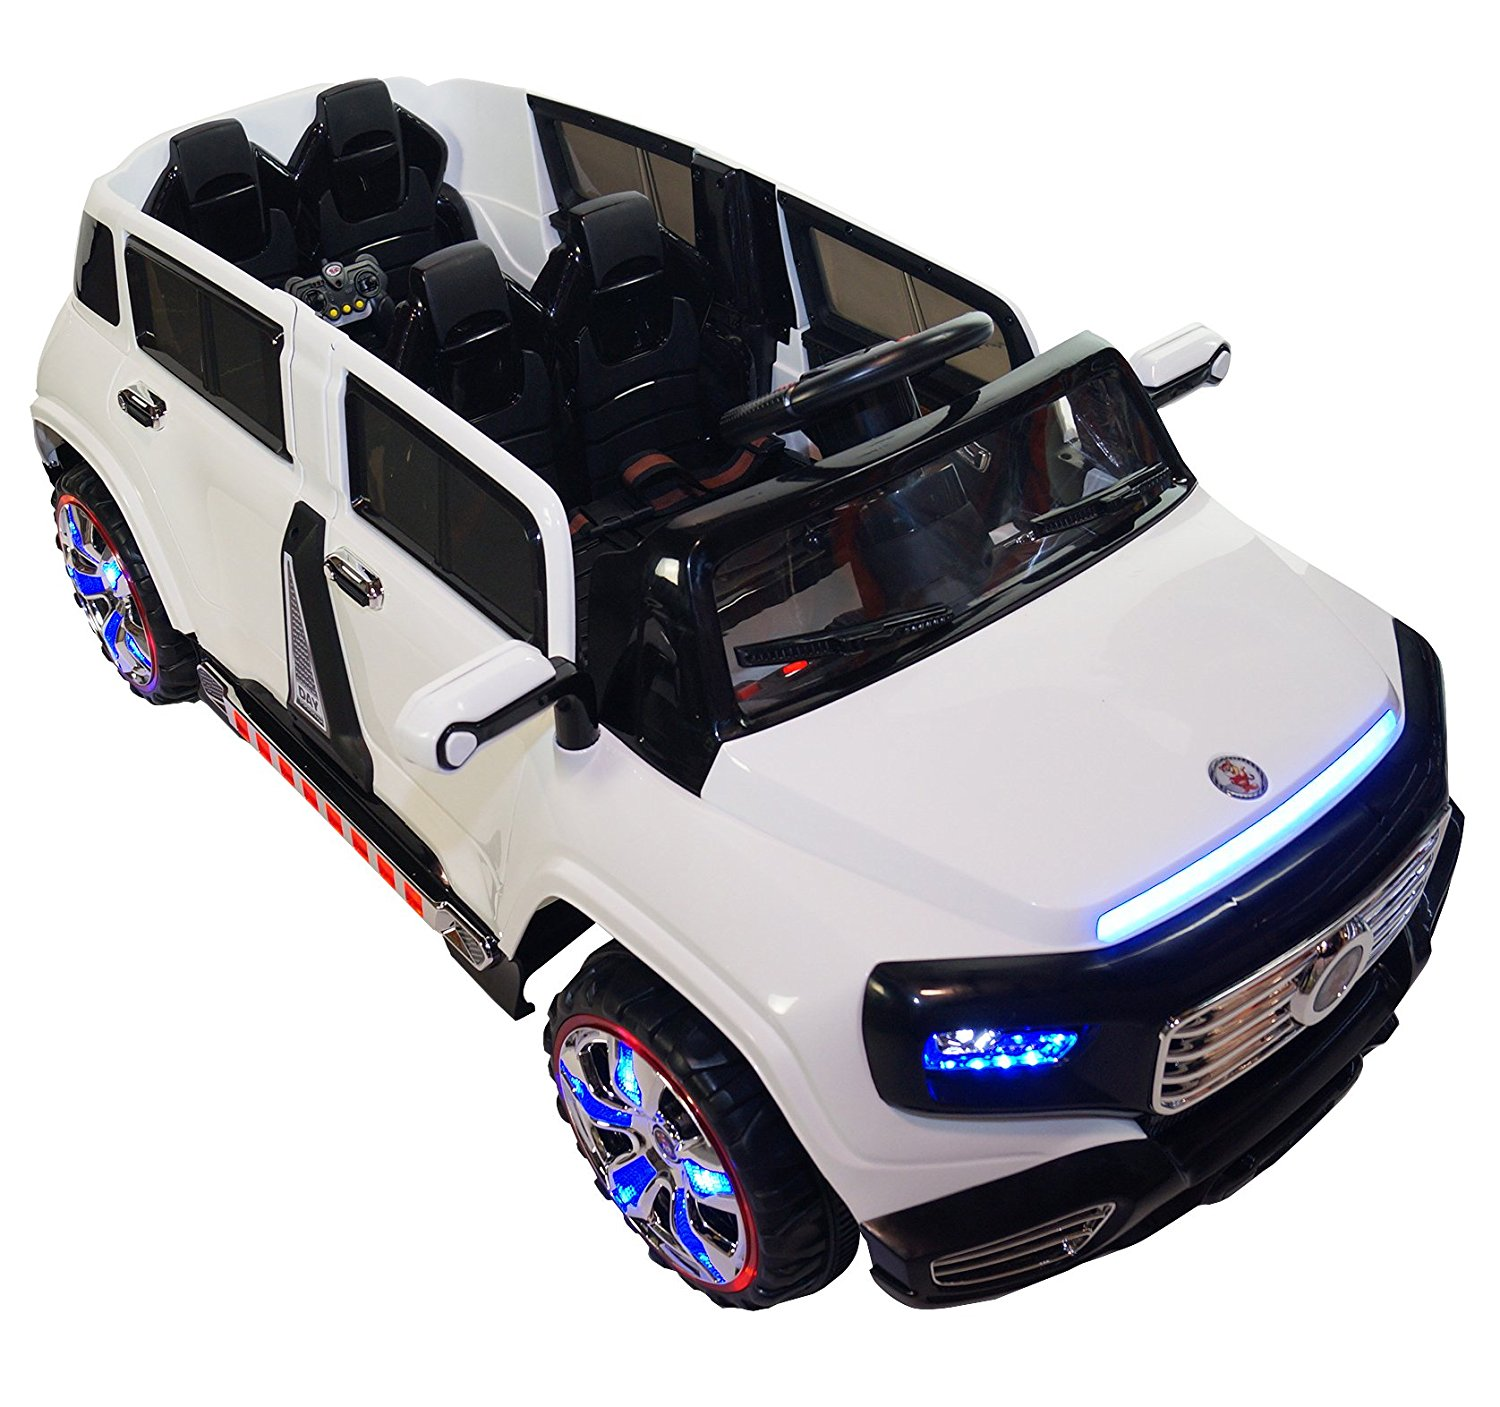 two seater ride on toy car for kids with remote control